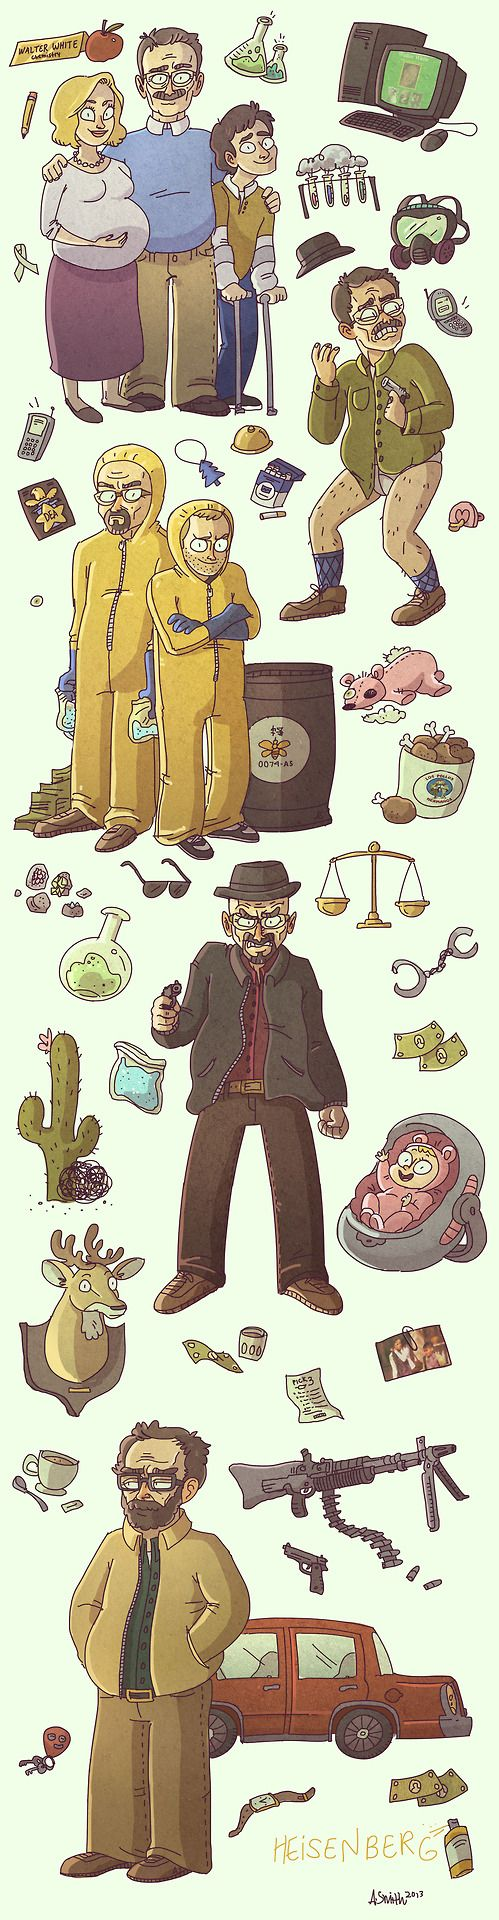 Breaking Bad - The changing personality of Walter White depicted in this awesome artwork by Alyssa Smith #GangsterFlick